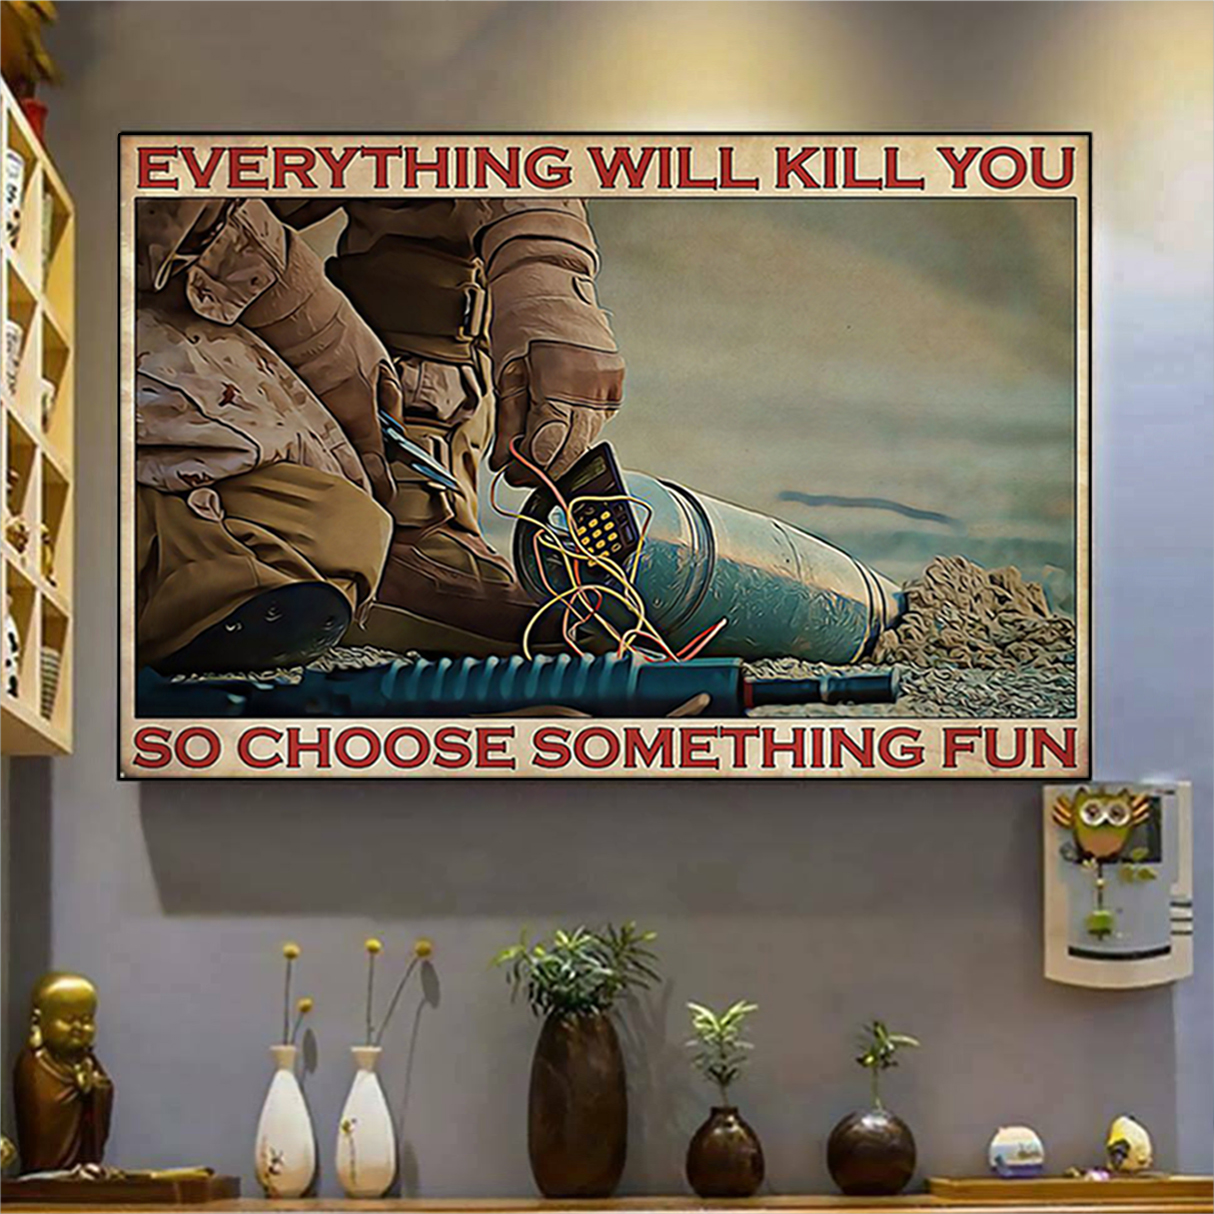 Bomb defusal everything will kill you so choose something fun poster A2